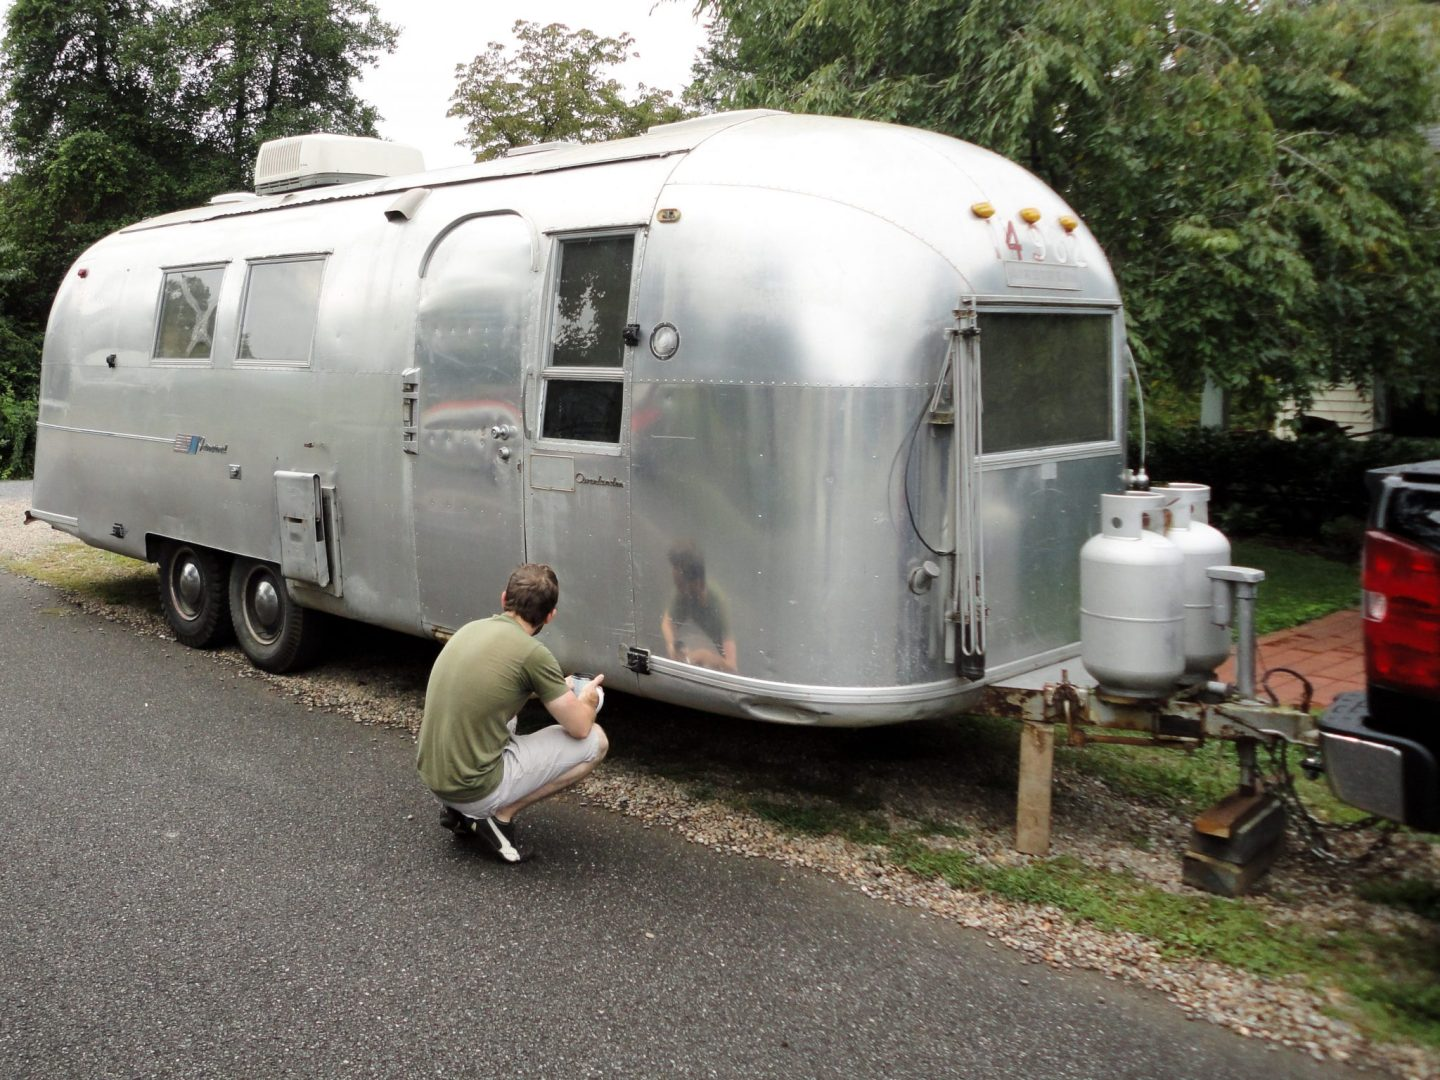 I May Have OFFICIALLY LOST MY MIND: I Bought a Vintage Airstream to Renovate!